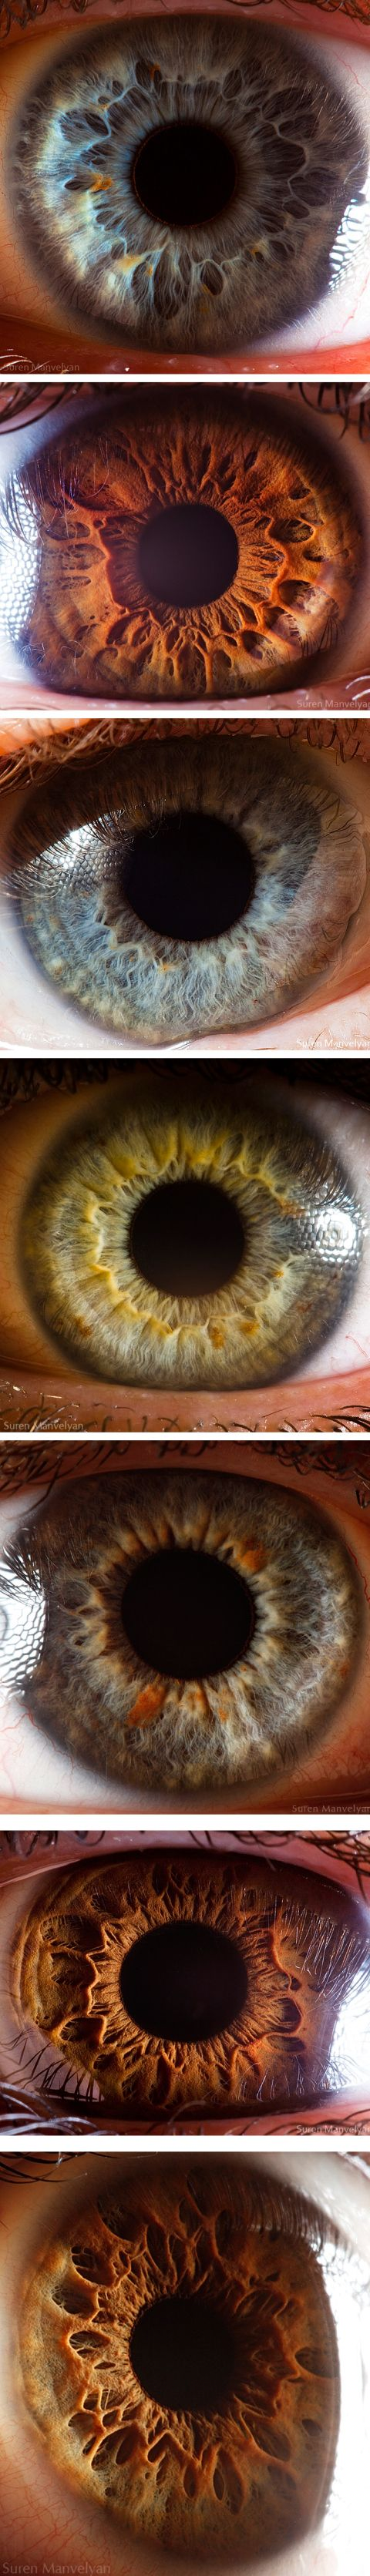 Something I've been meaning to do myself, must get round to it. So interesting to see what lurks in the human eye, which with our naked eye we can't see in such a detail.